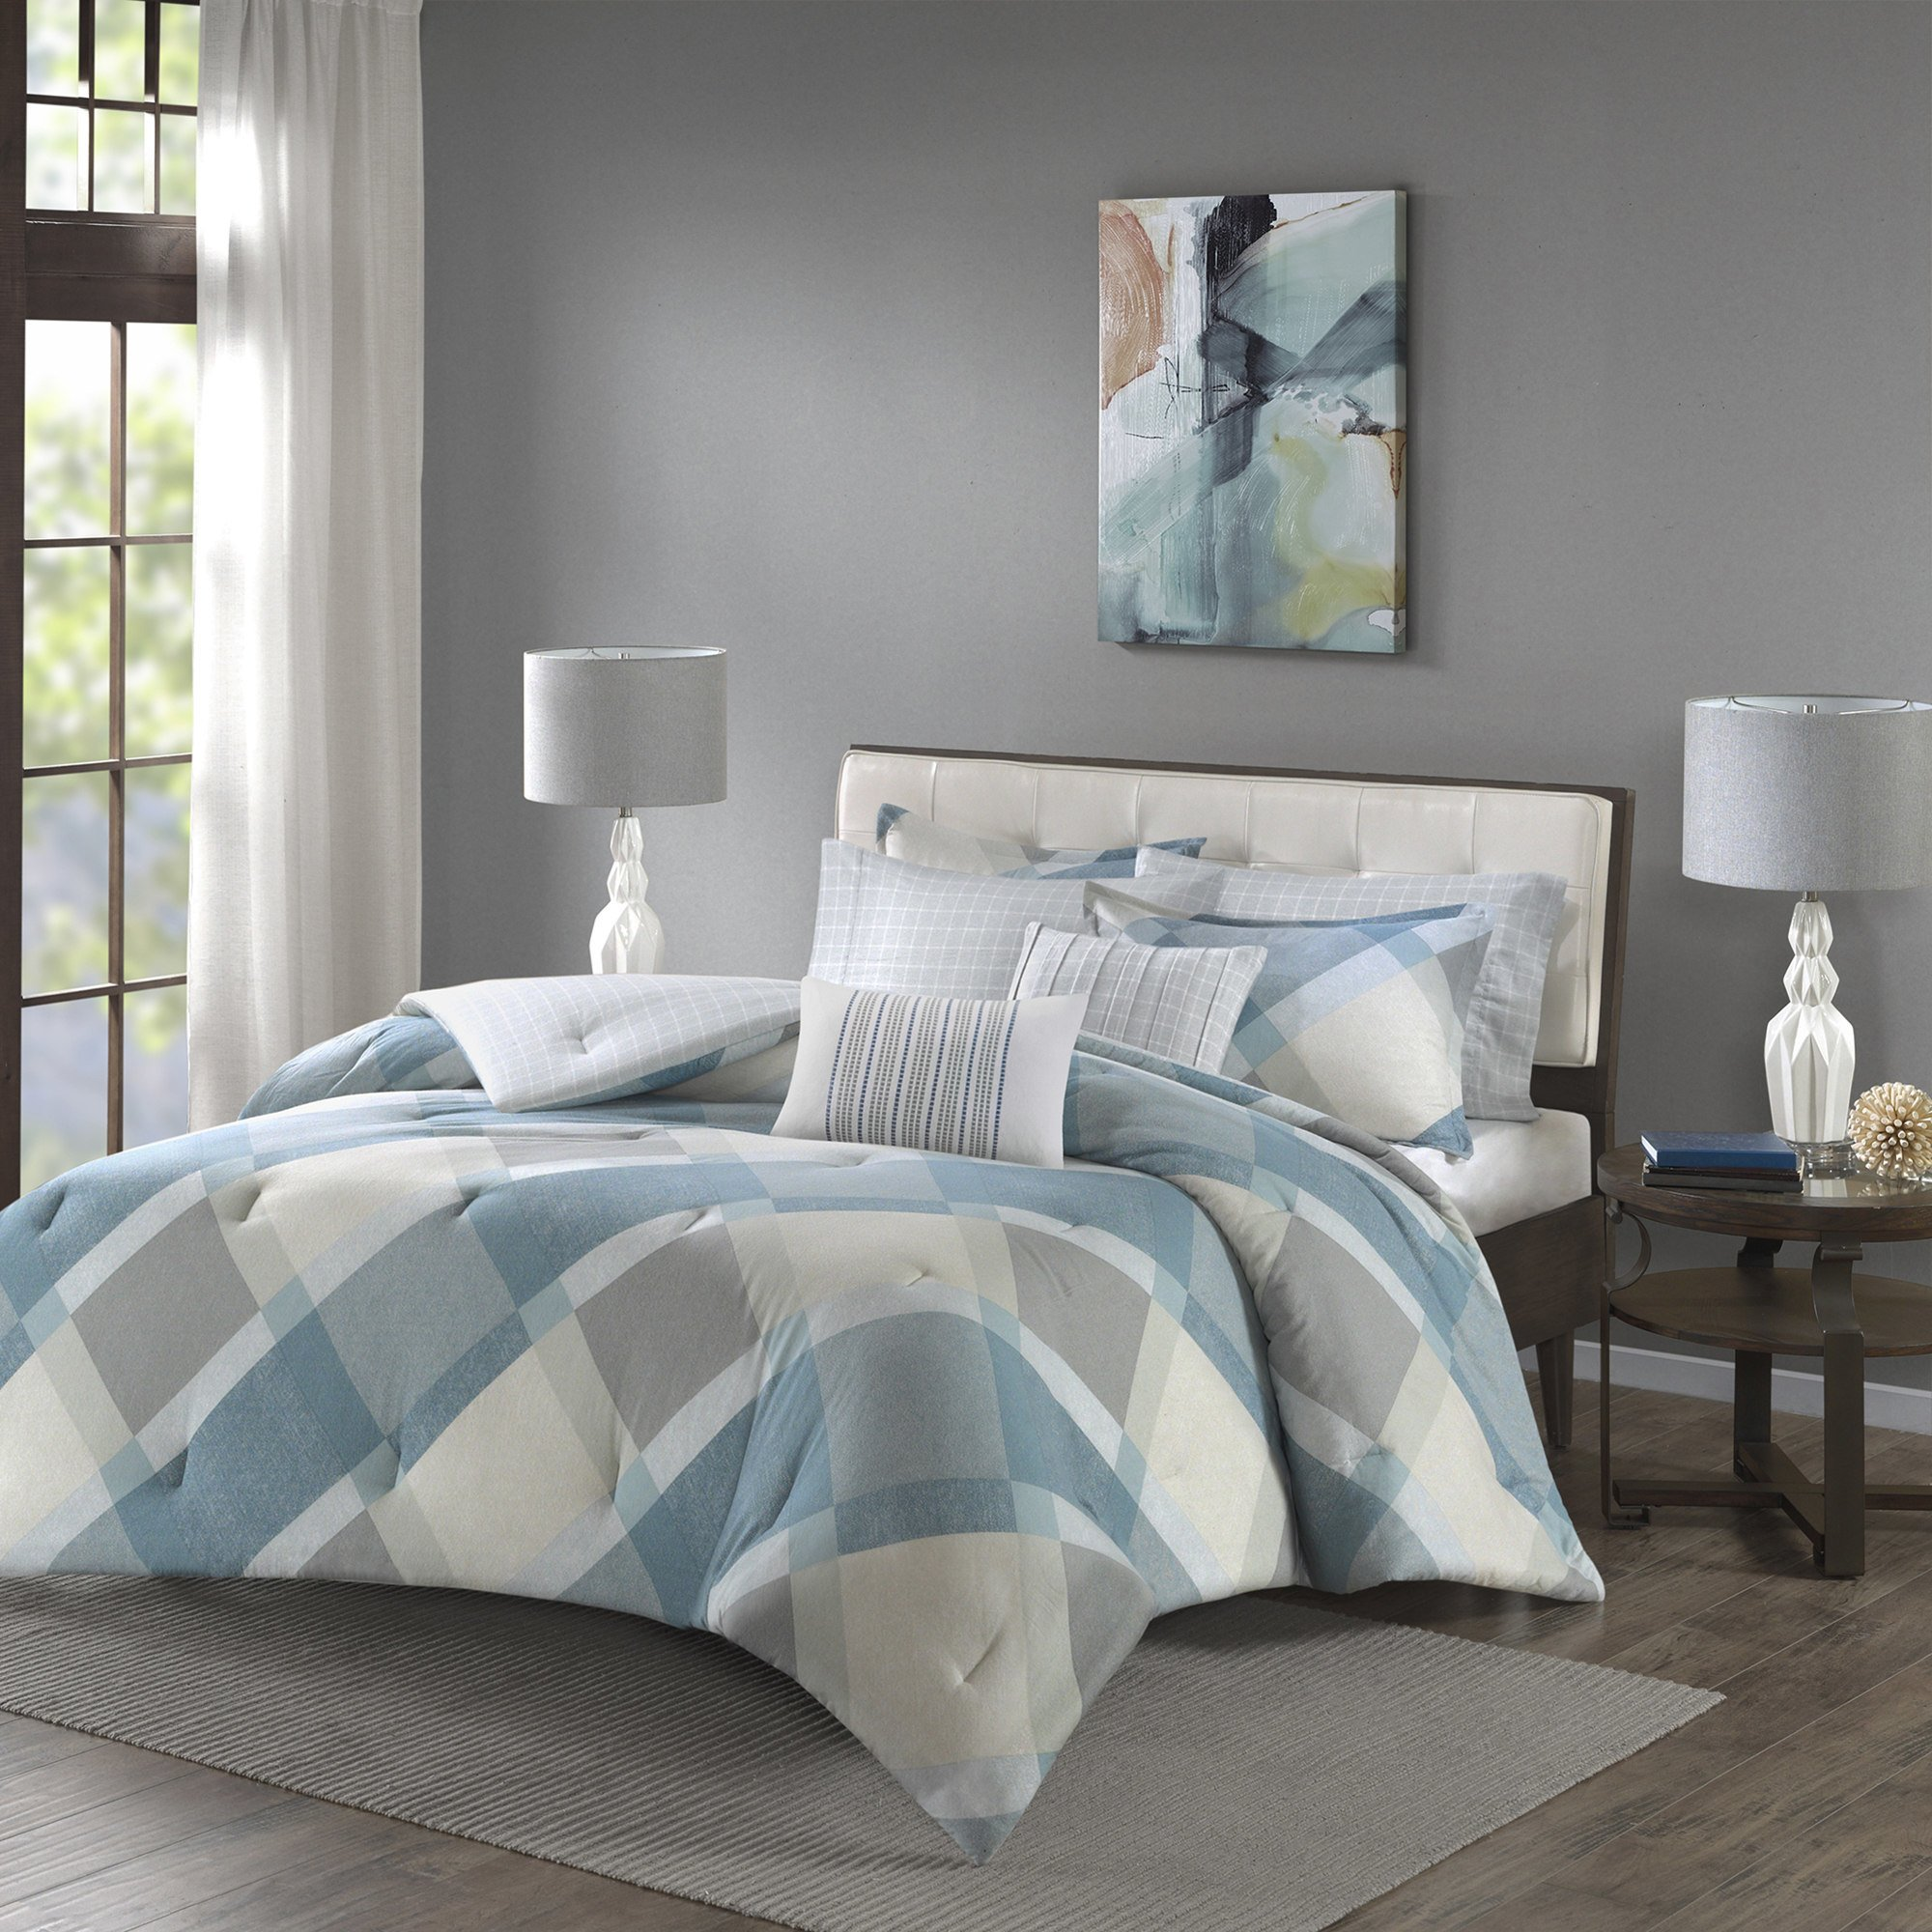 7 Piece Dusty Blue Grey Off White Checkered Diamond Plaid Themed Flannel Duvet Cover Full Queen Set, Beautiful Geometric Checker Bedding, Chic Reverse Windowpane Theme Pattern, Cotton